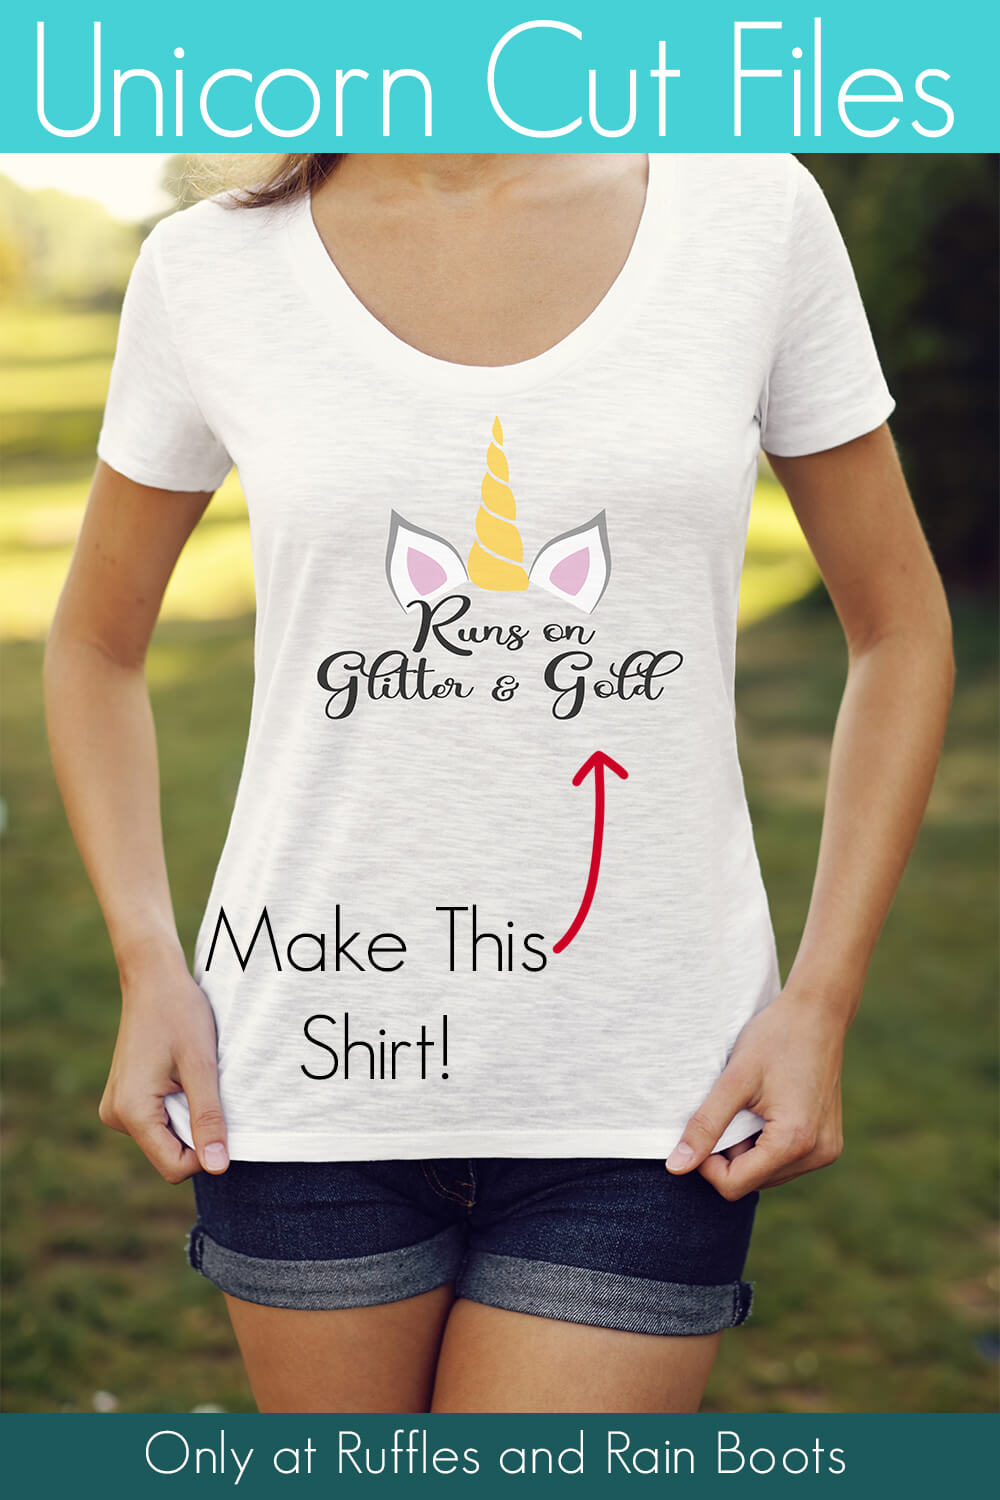 runs on glitter and gold free unicorn svg for Cricut on t-shirt that lady is wearing with text which reads unicorn cut files make this shirt!